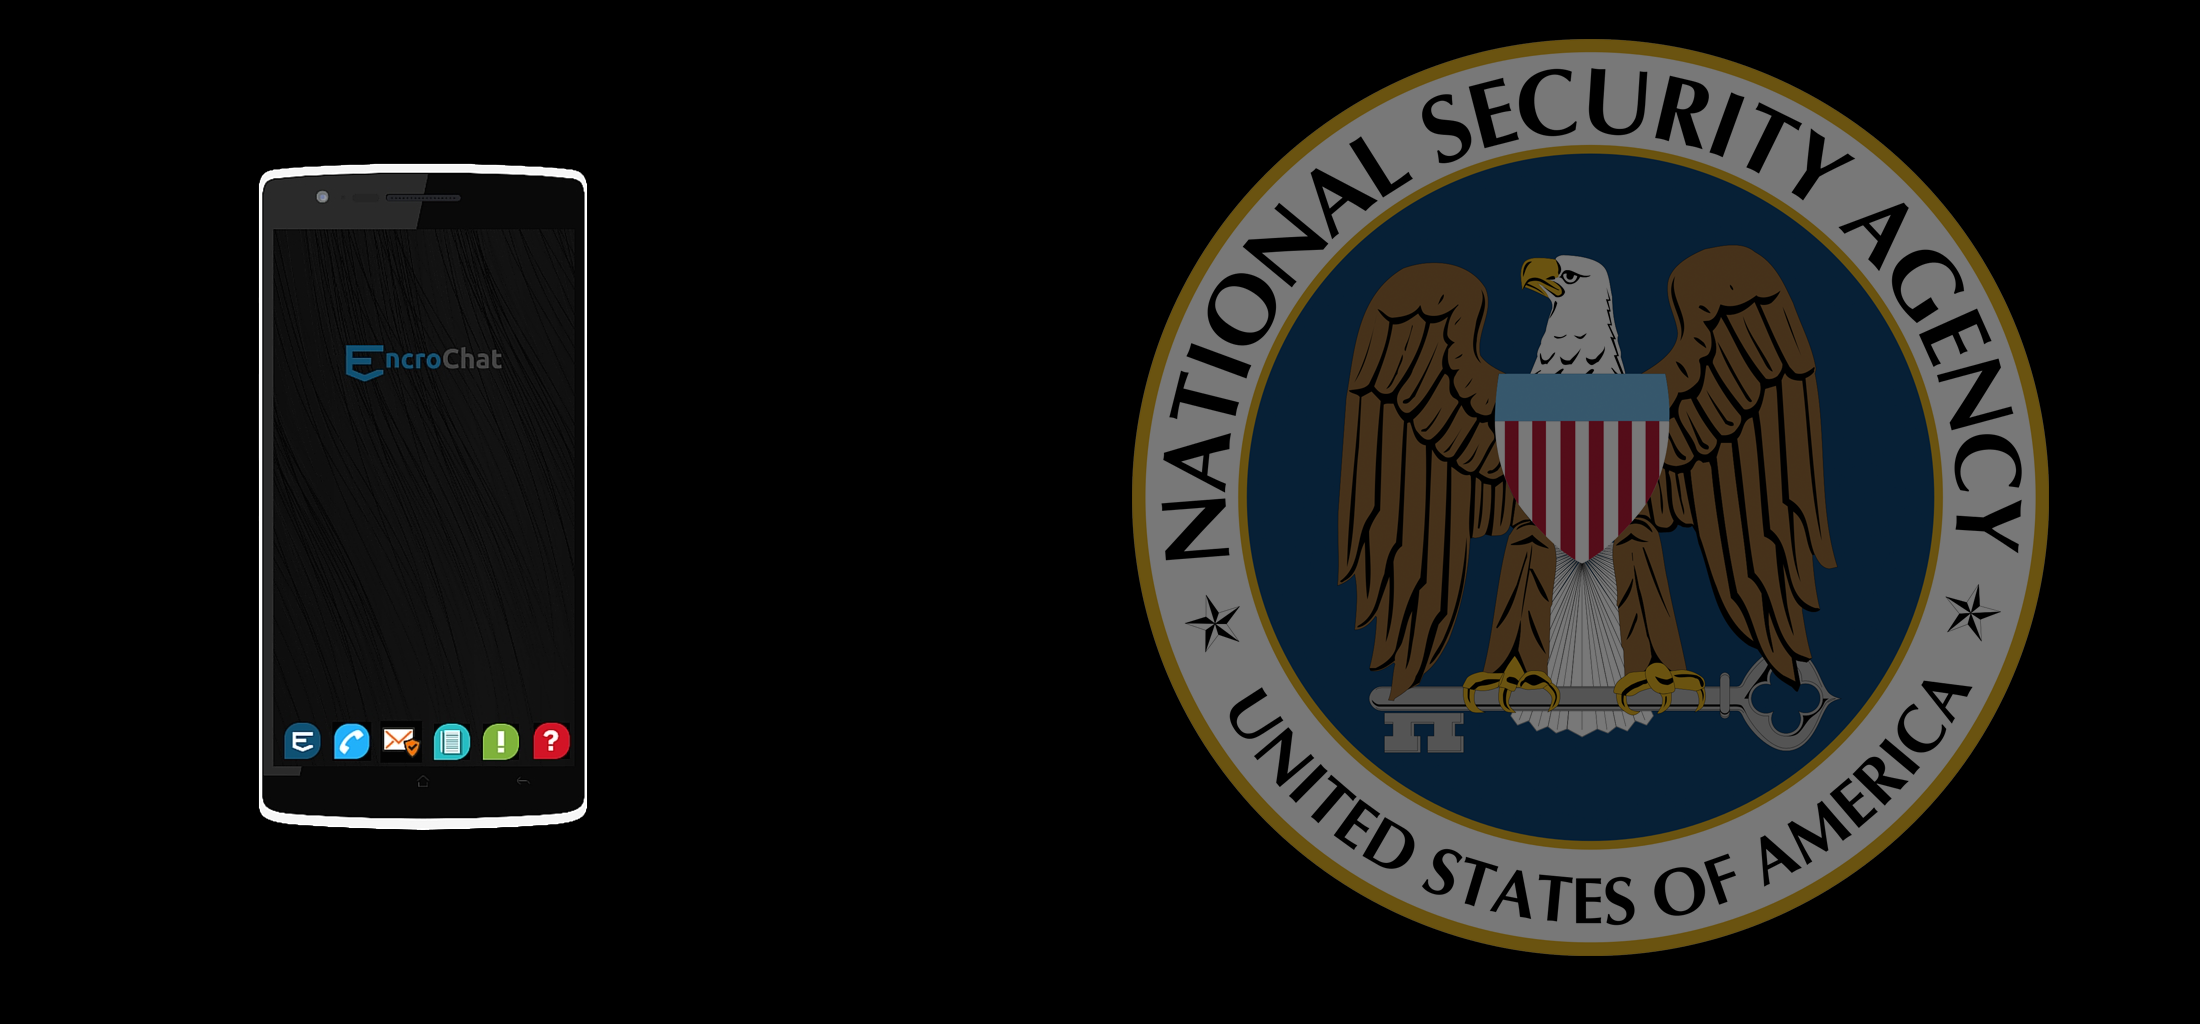 Evidence suggests Encrochat is working with the NSA and other